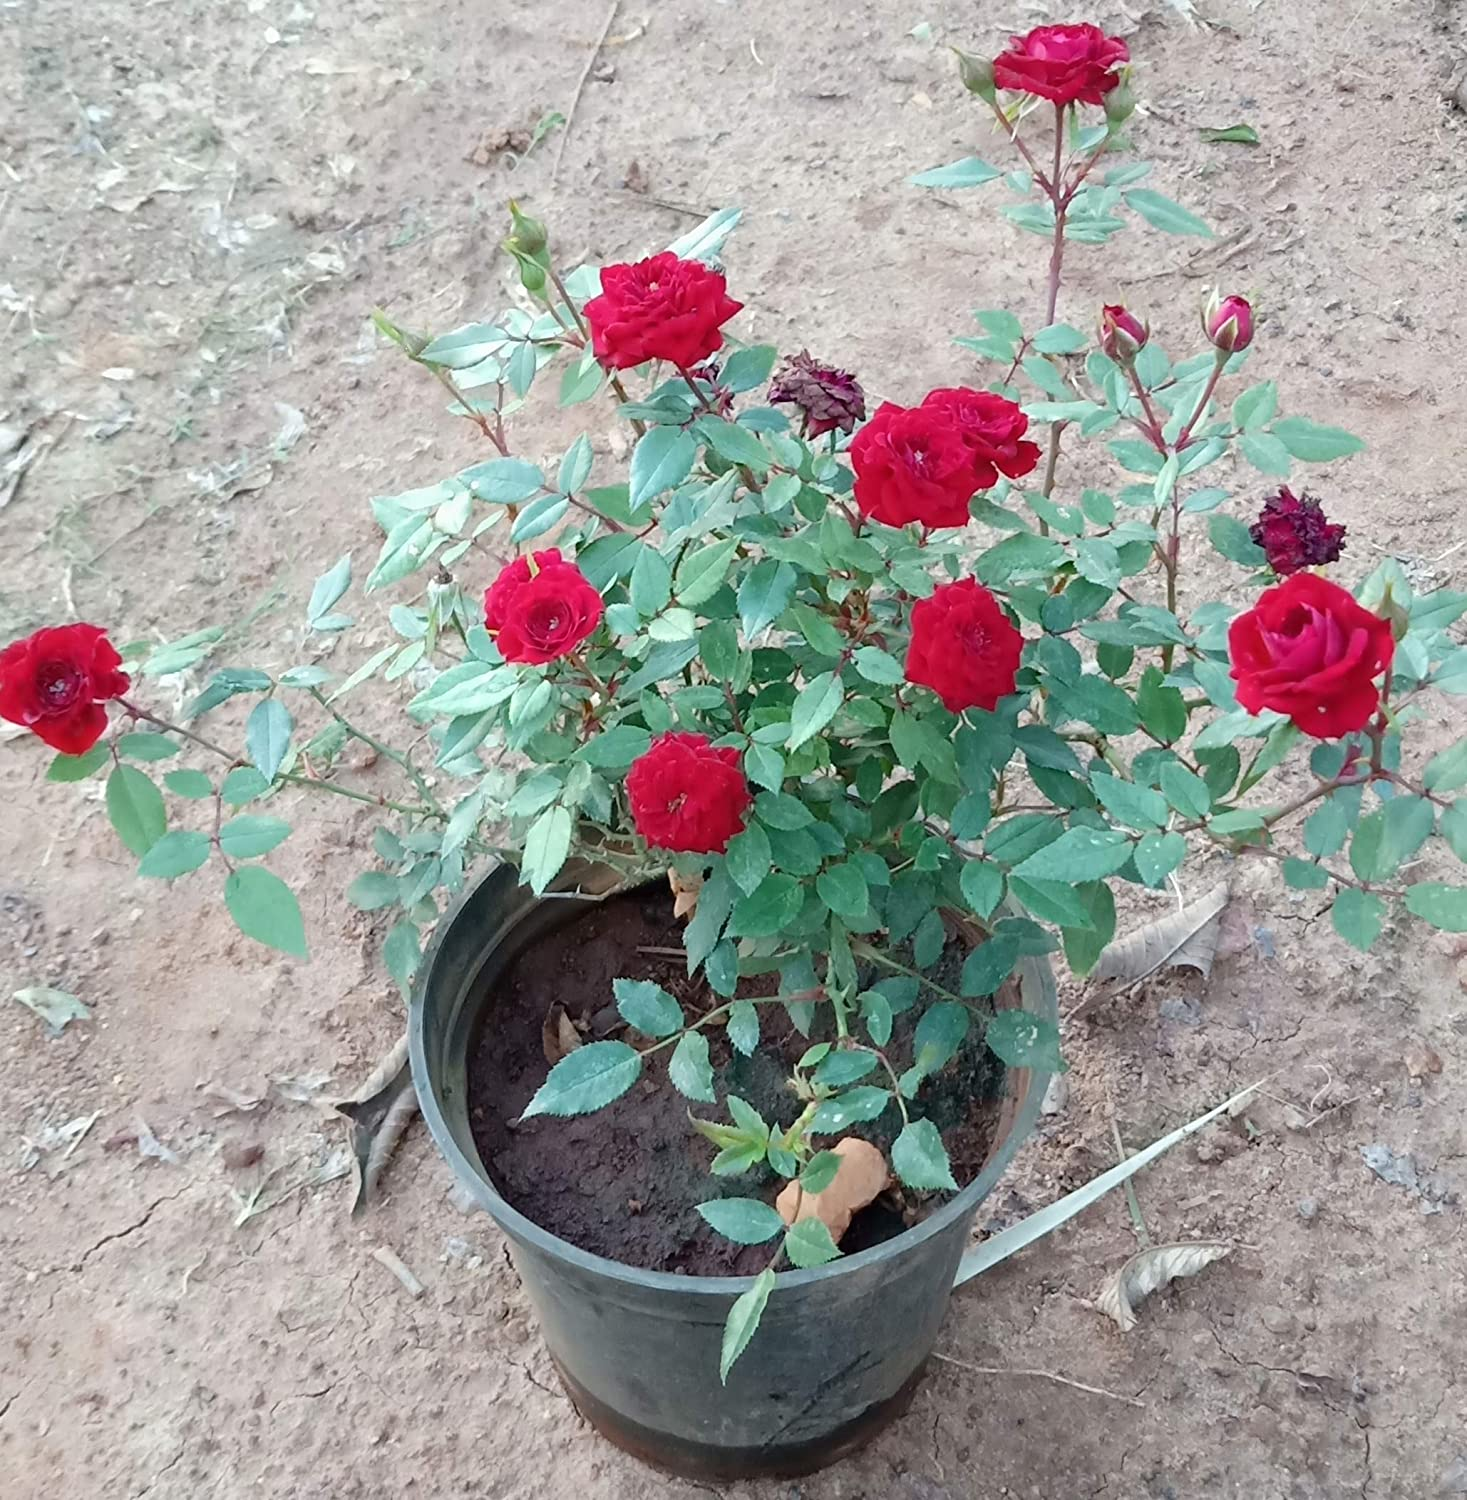 Zooqa Roses Red Rose Plant Button Rose Strong Stem With Pot